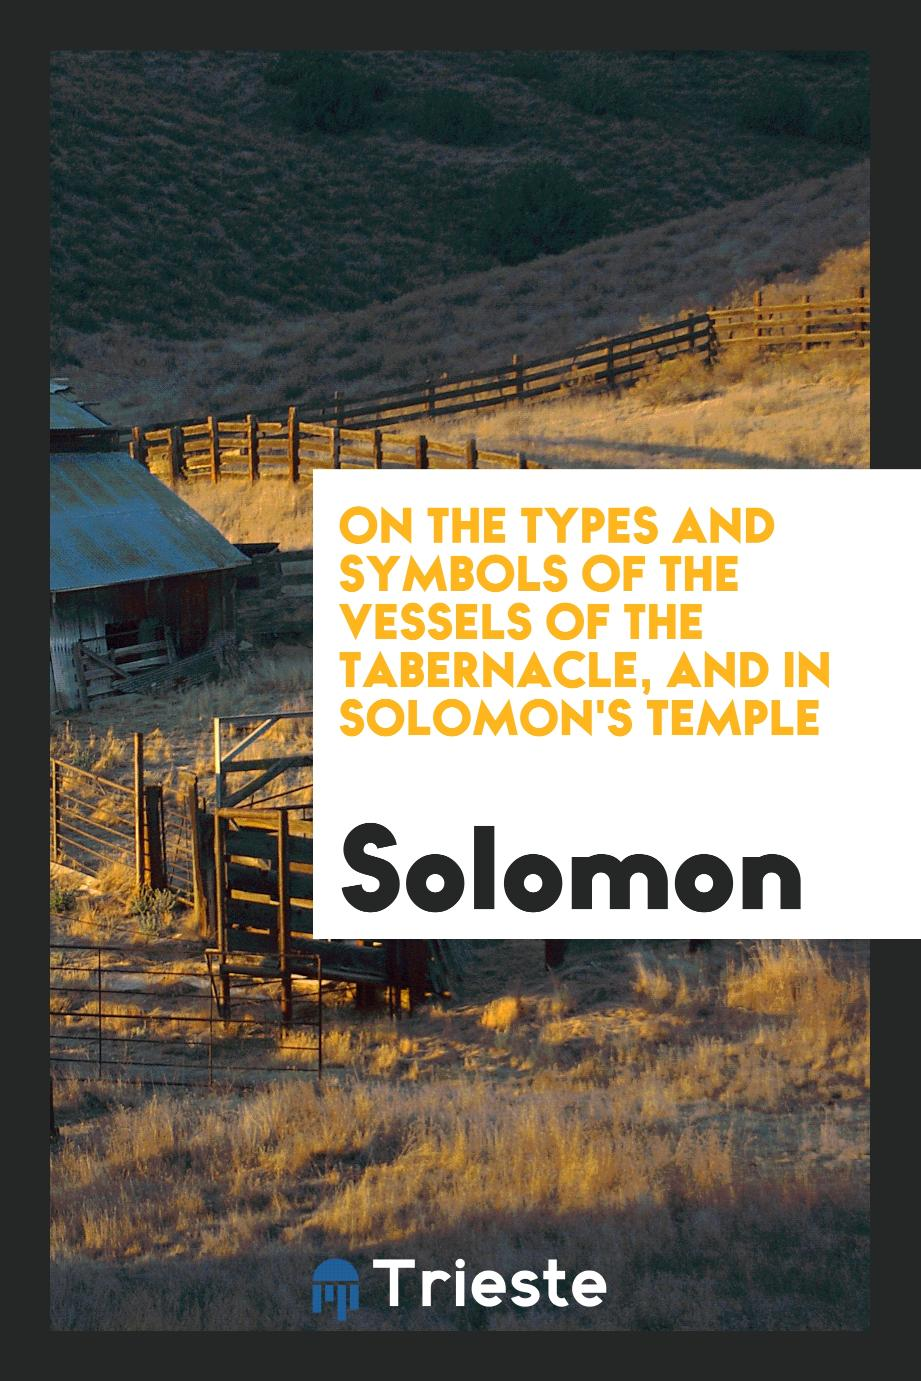 On the Types and Symbols of the Vessels of the Tabernacle, and in Solomon's Temple